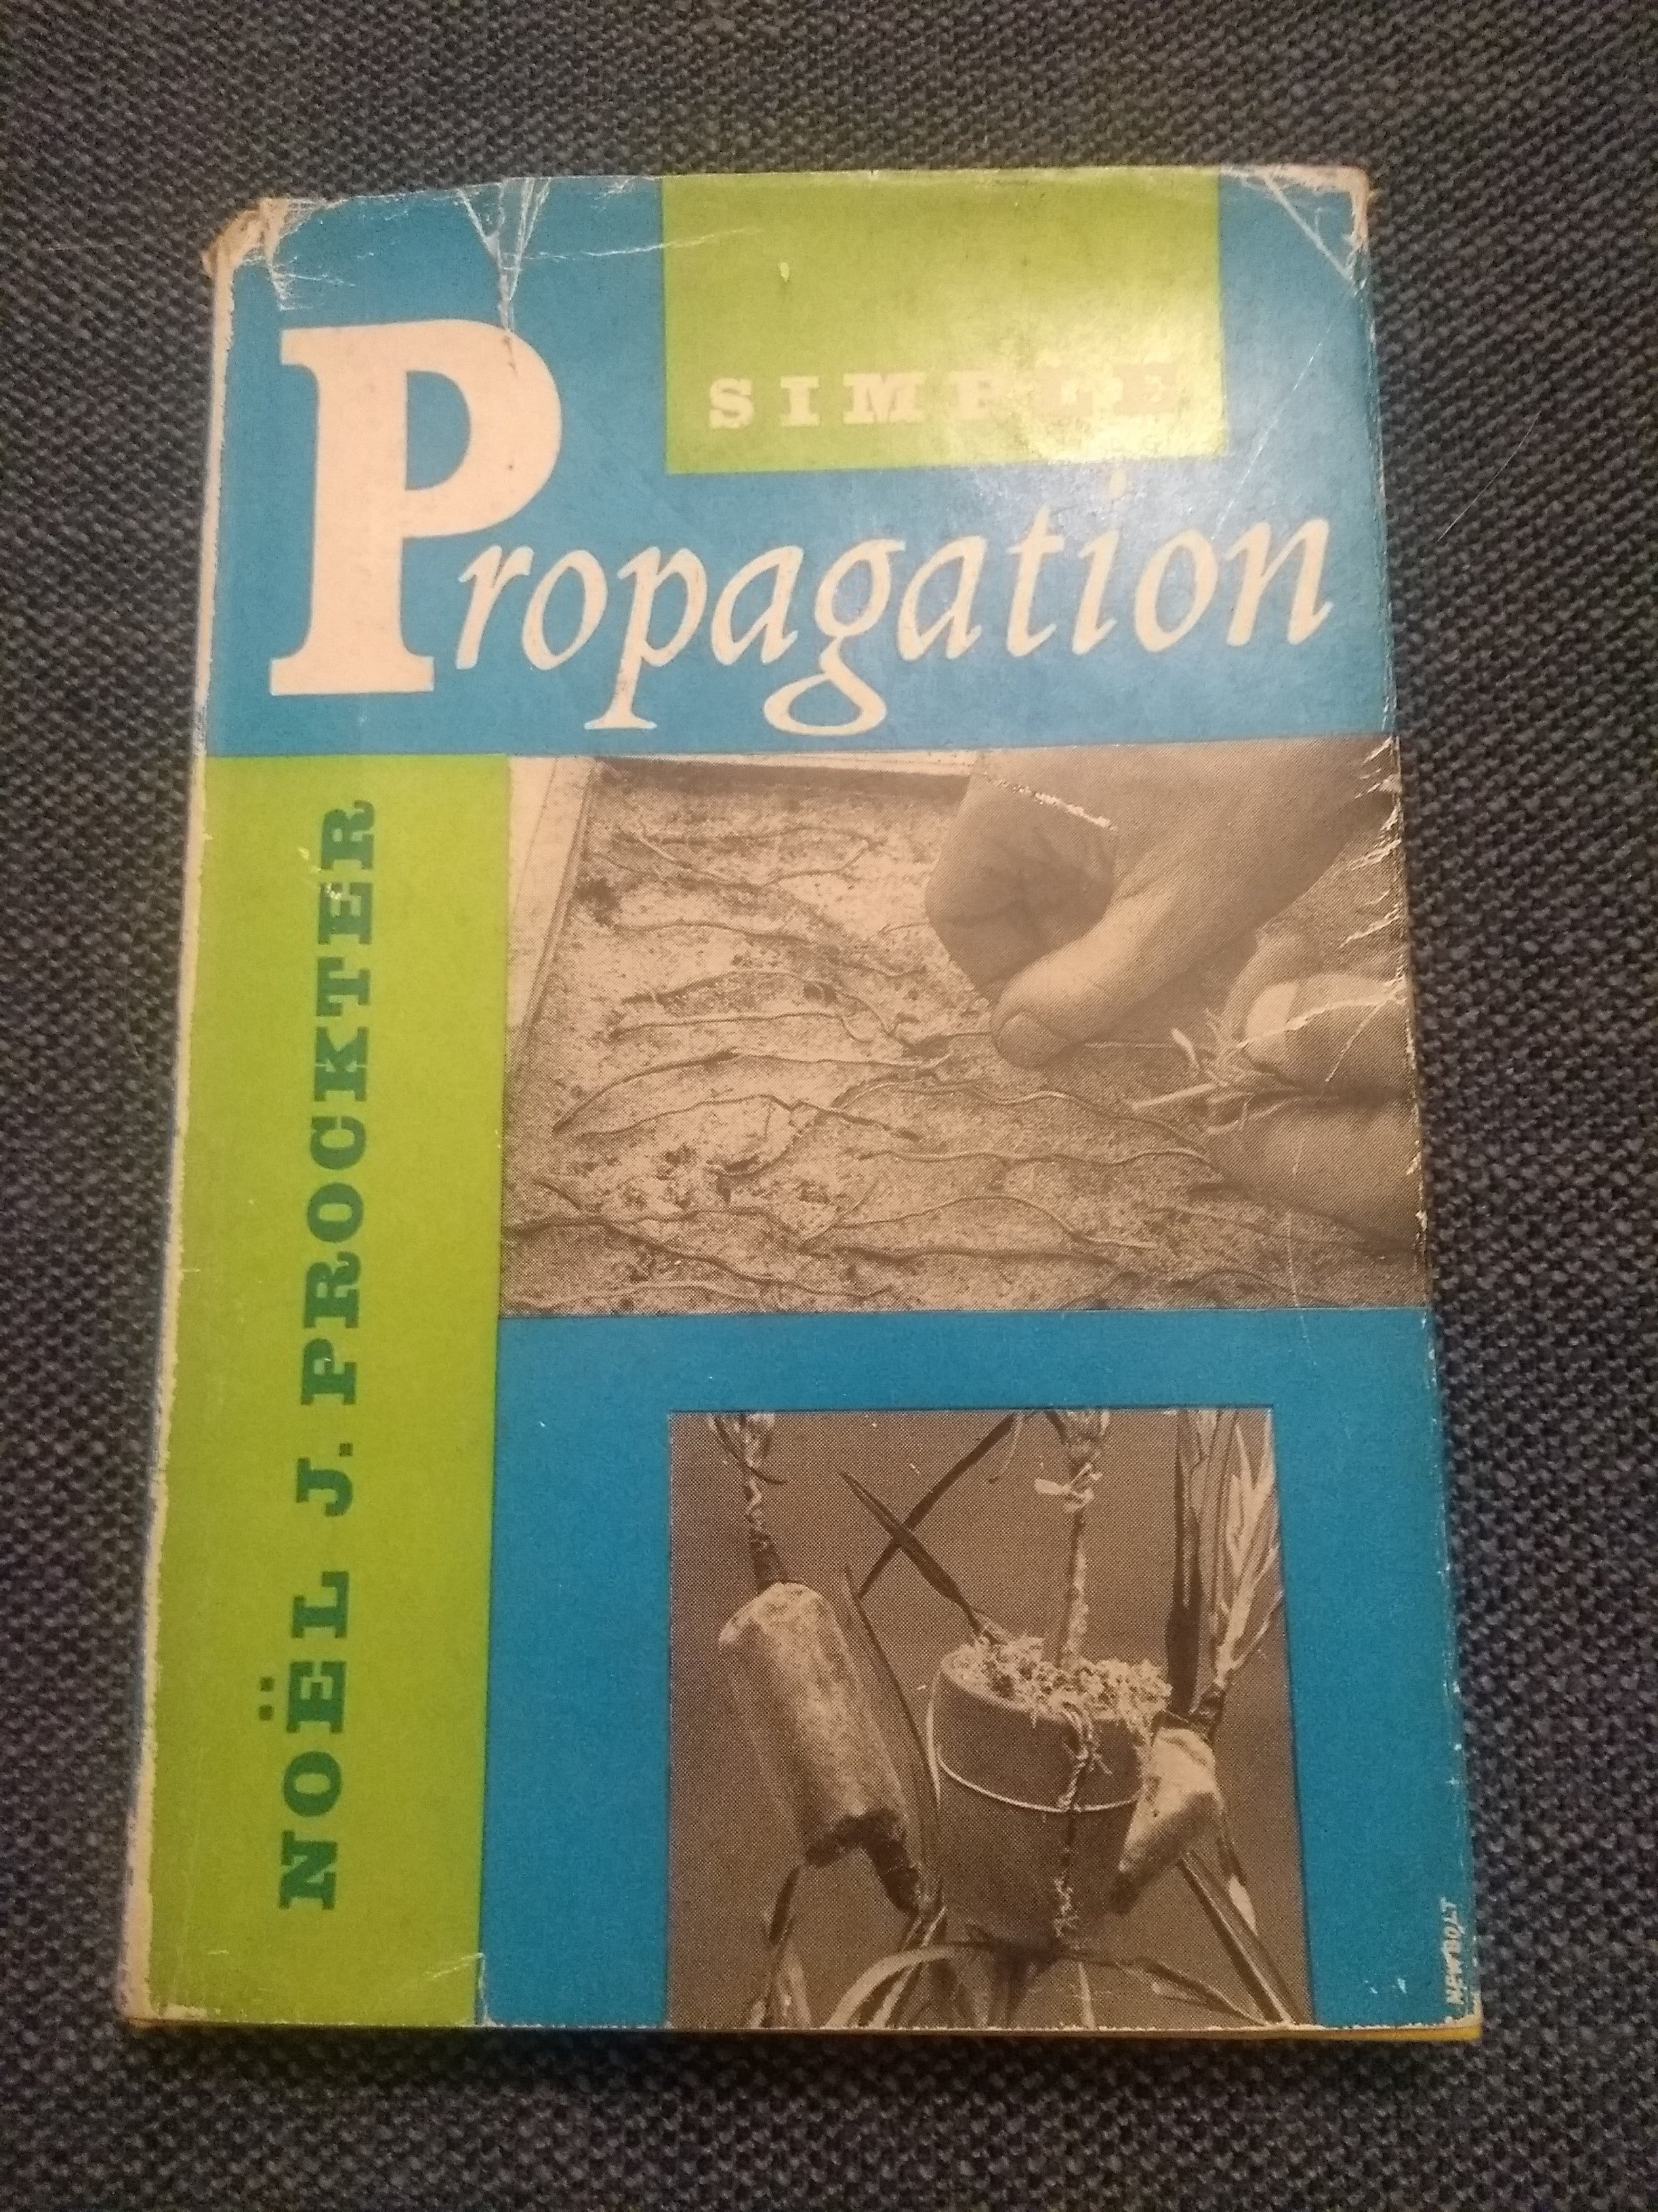 Simple Propagation, by Noel J Prockter